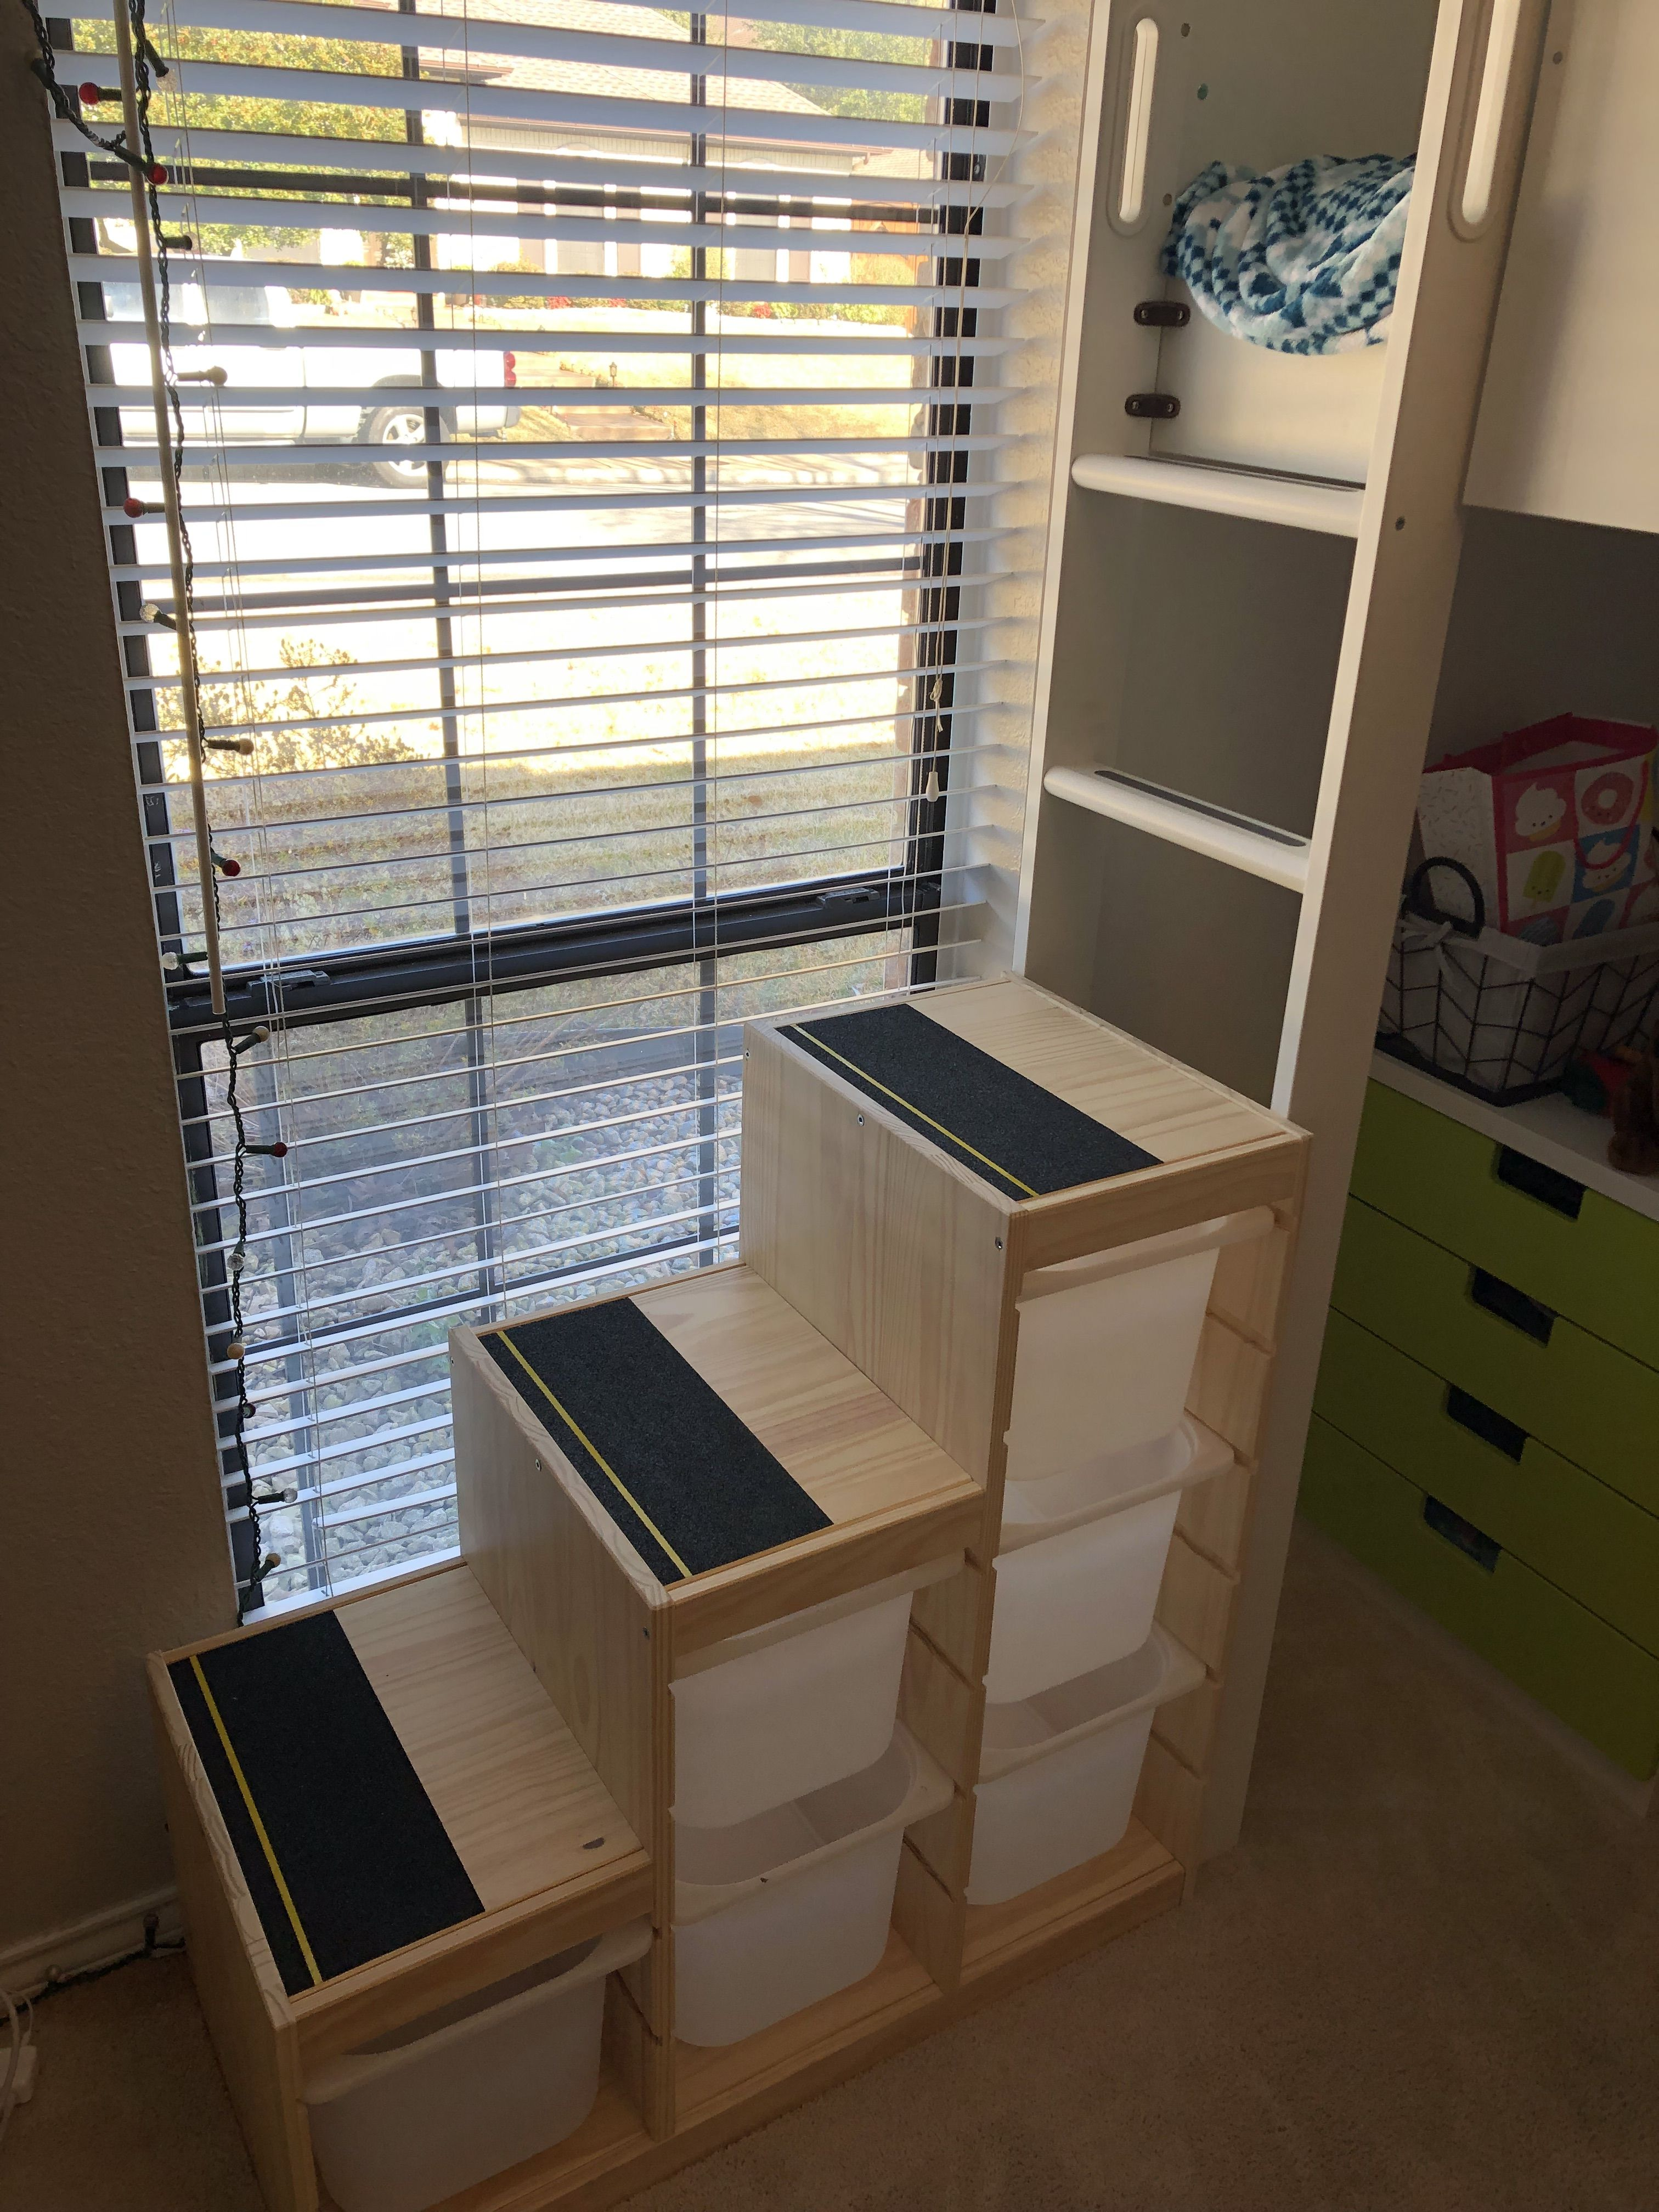 Ikea Hack Trofast Cubes For Loft Bed Staircase With Added Adhesive